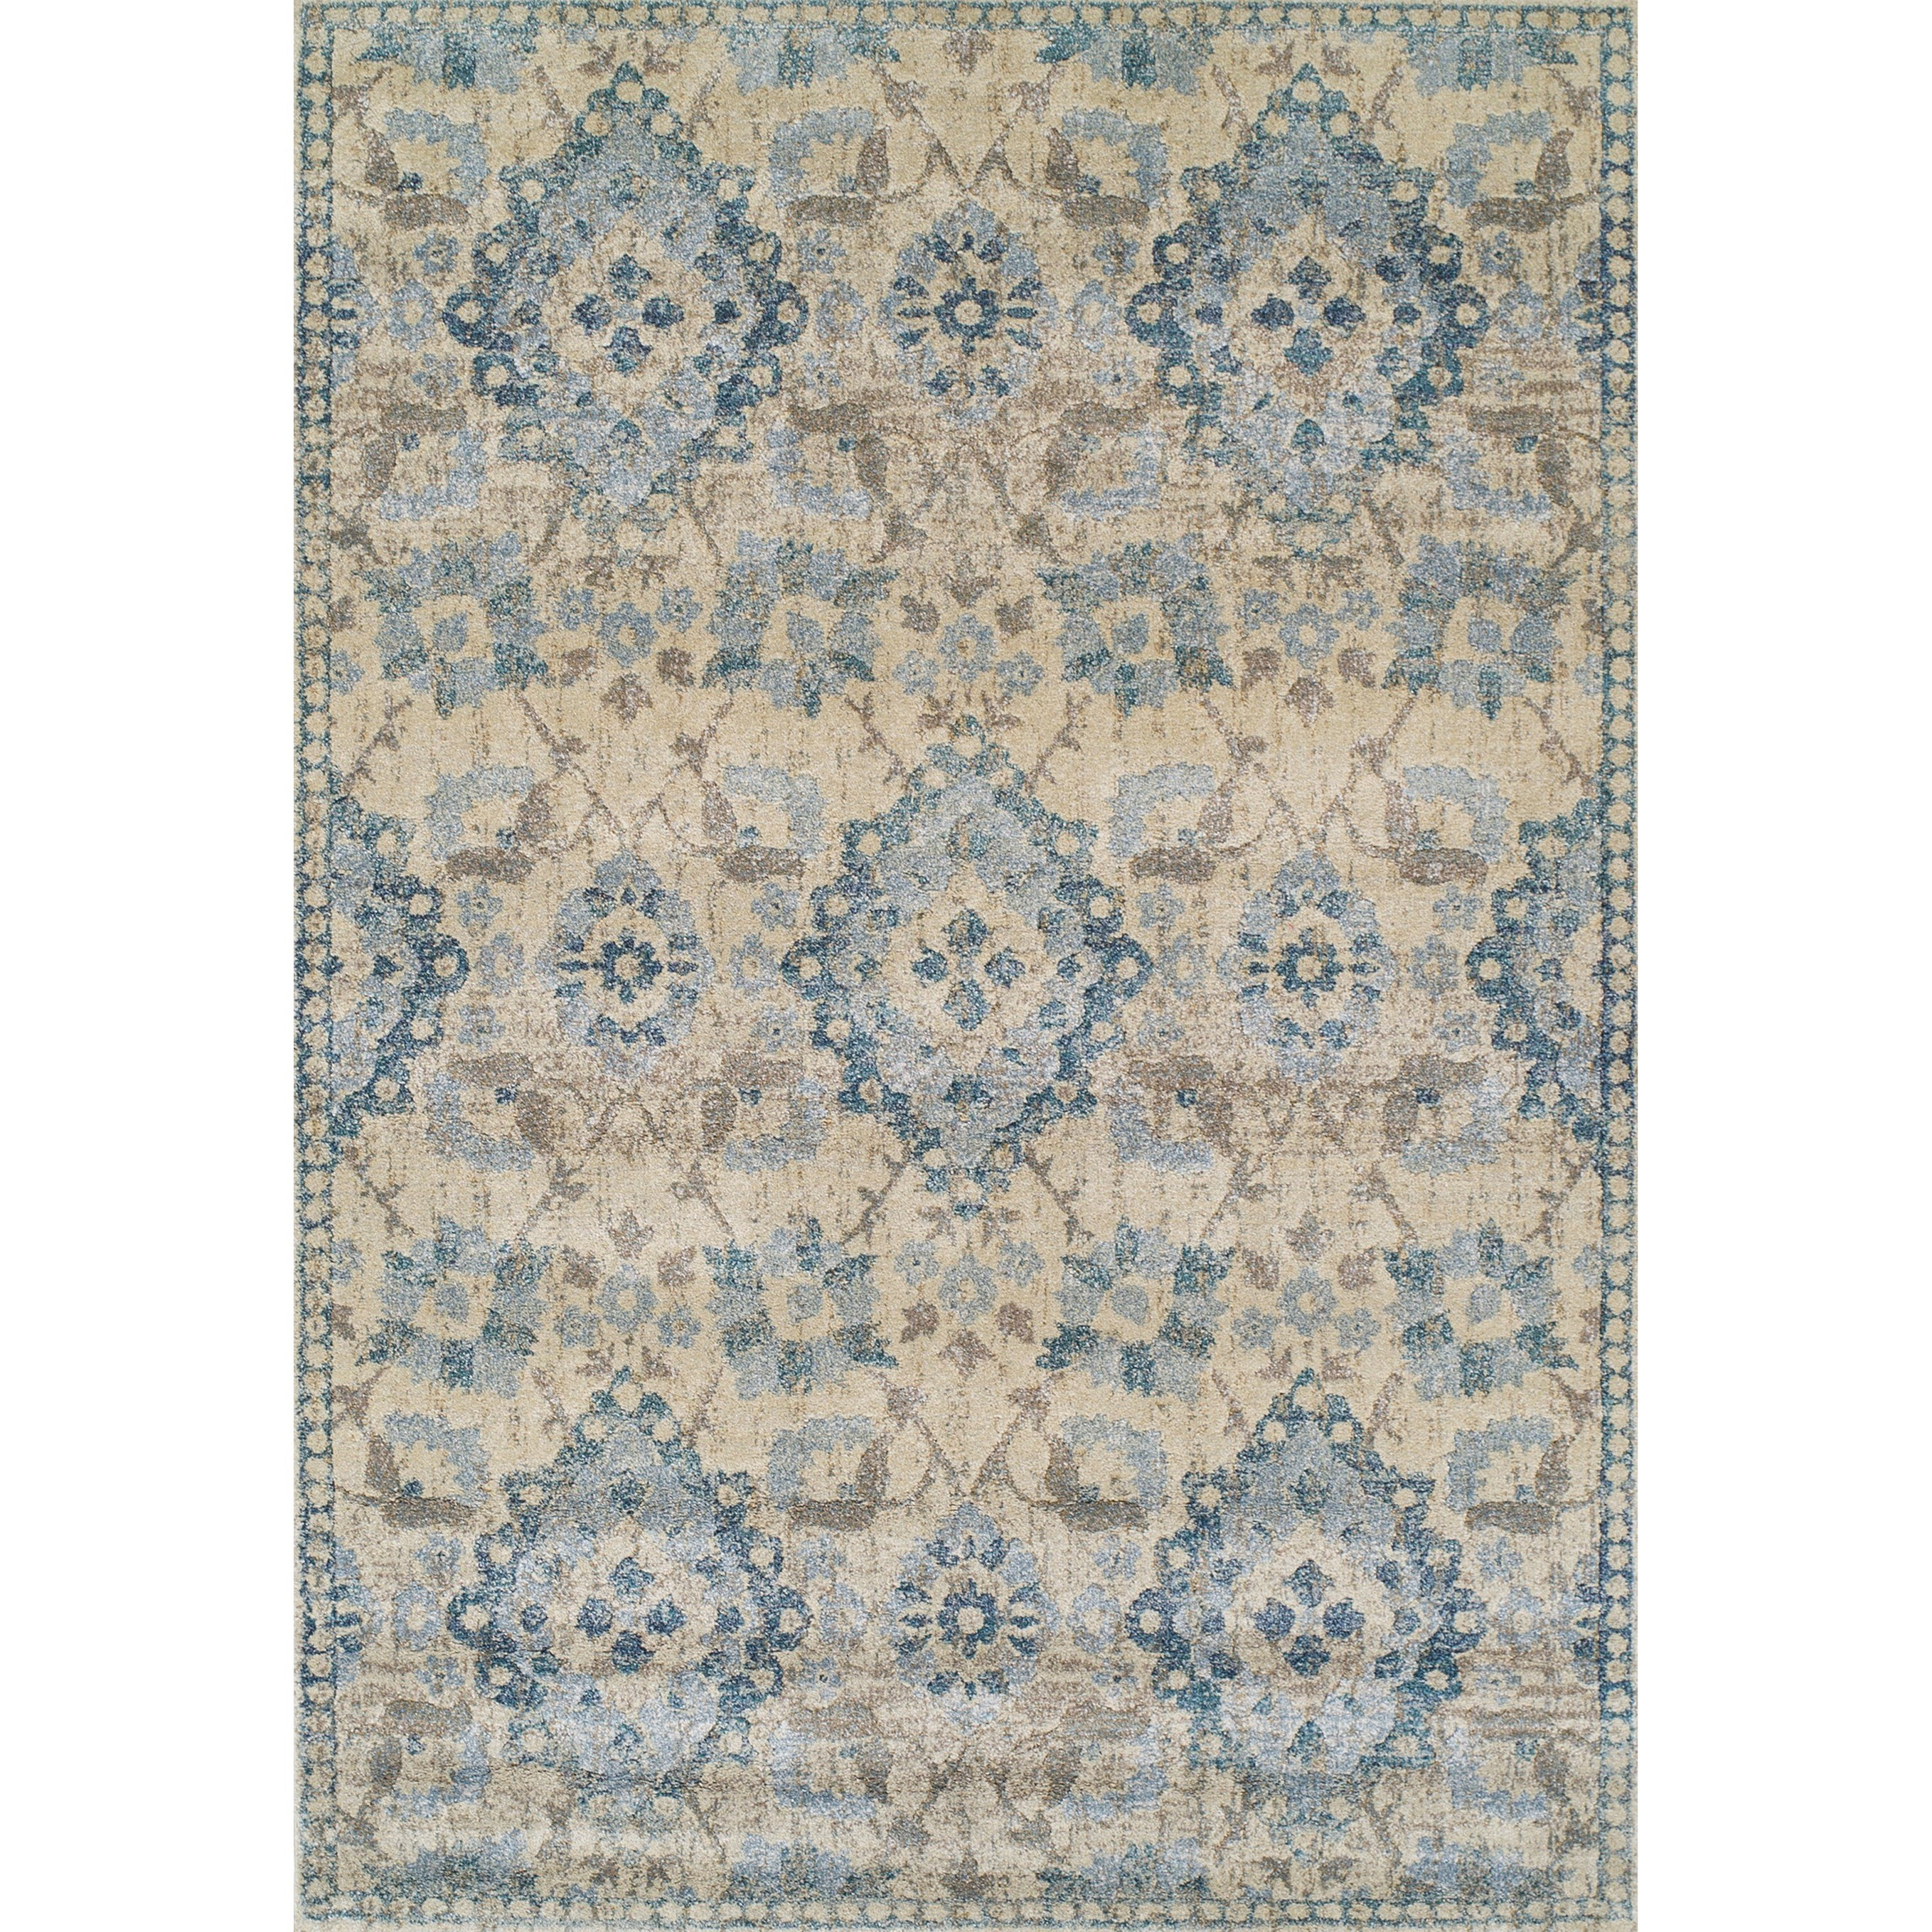 """Antigua Linen 3'3""""X5'3"""" Area Rug by Dalyn at Fashion Furniture"""